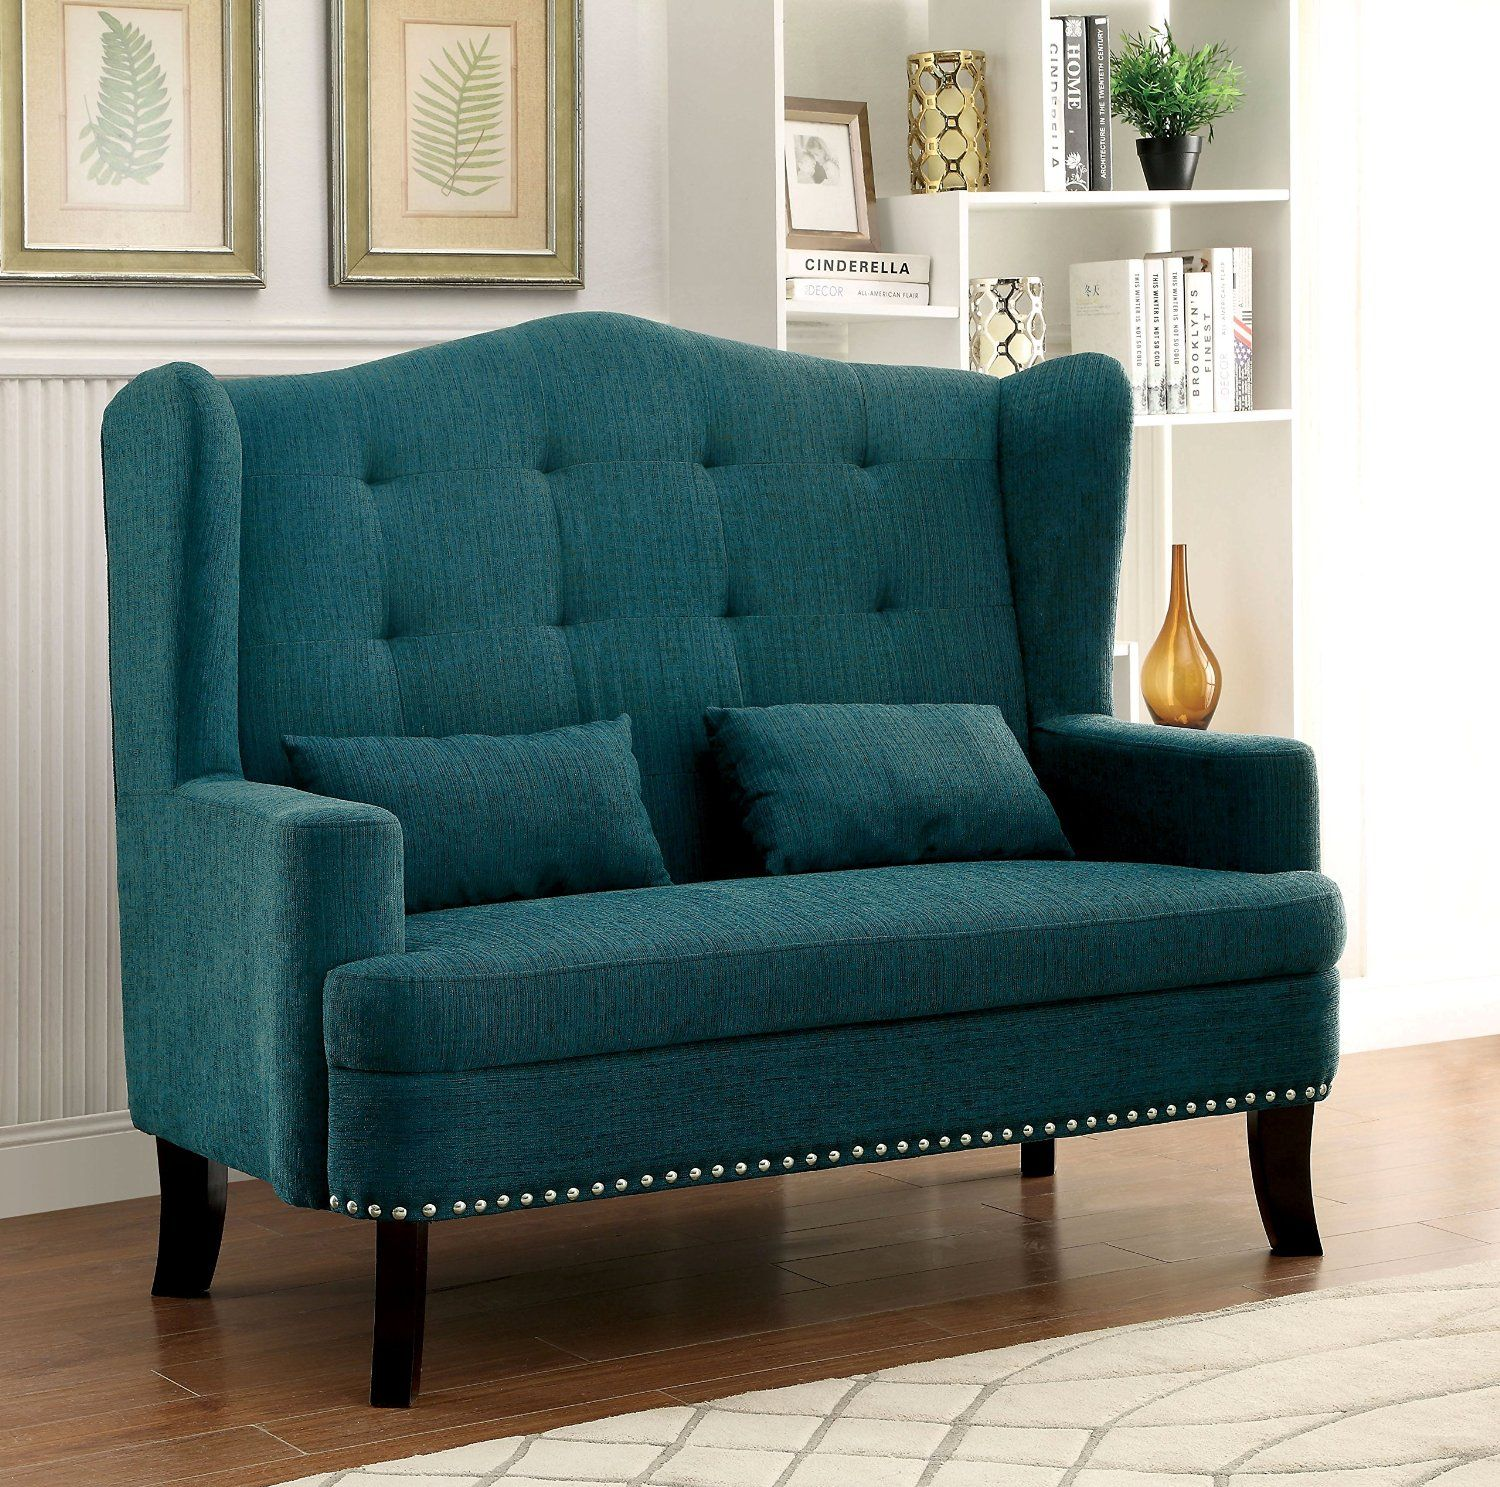 Furniture of America Setubal Wing Back Upholstered Love Seat